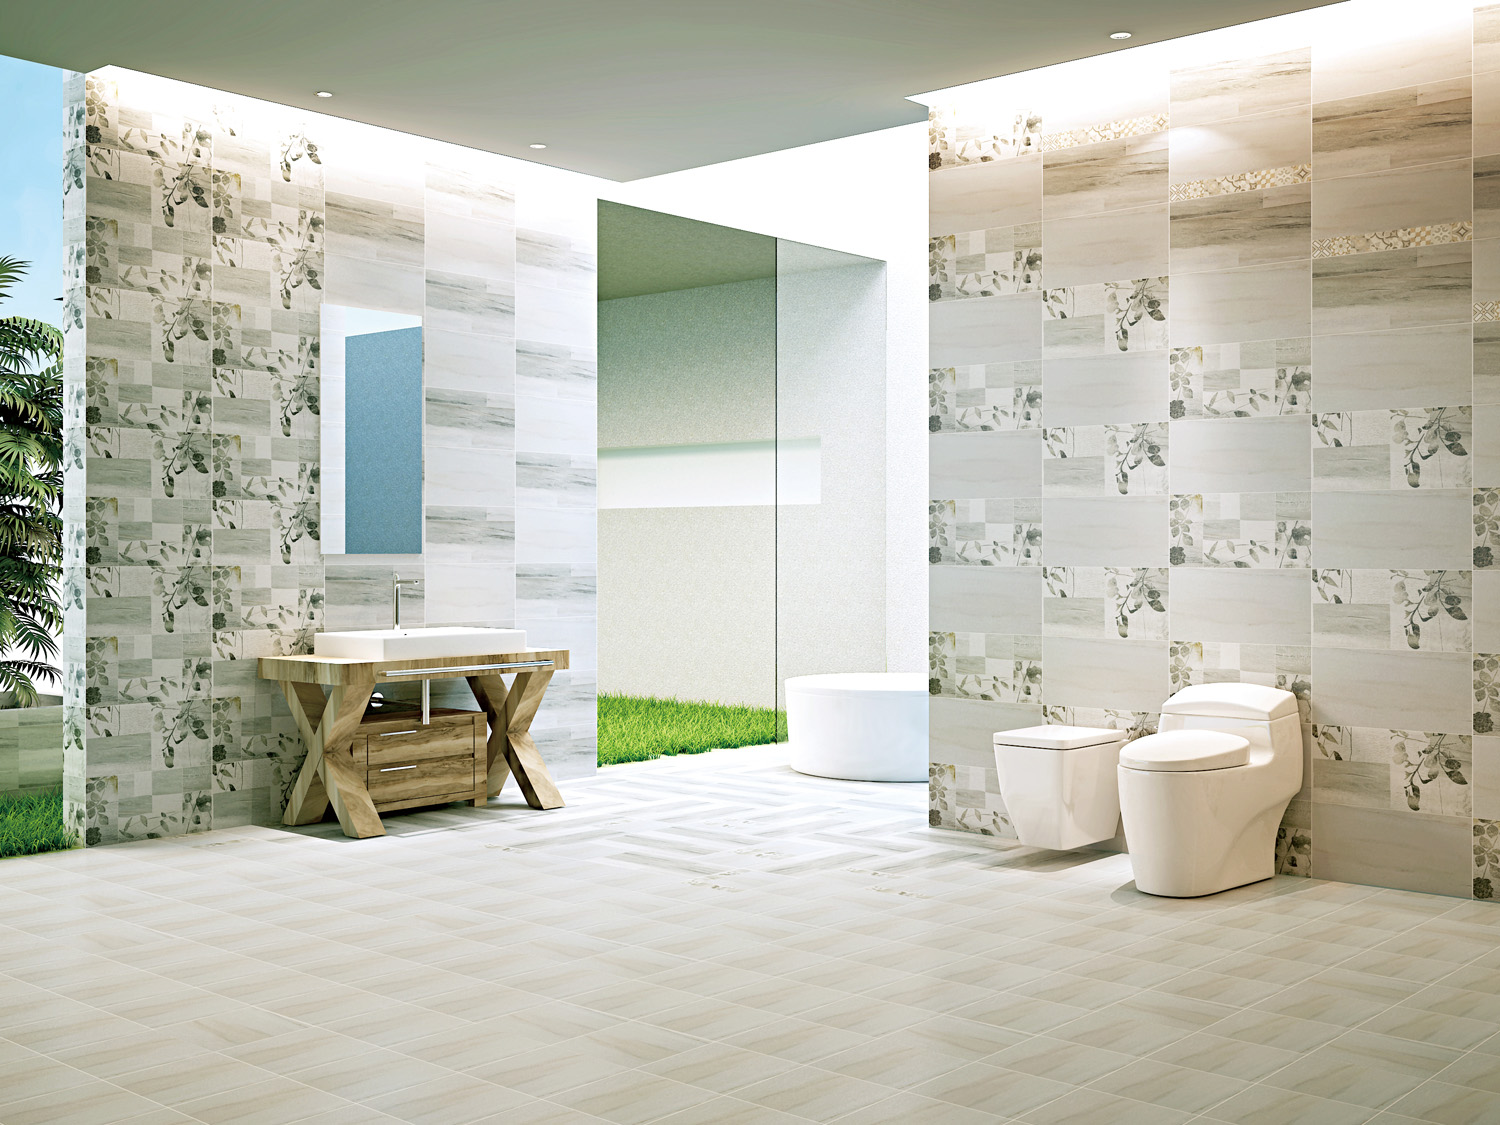 Picture of: Wholesale Decorative Wall Tiles Bathroom Zp36016 Manufacturer